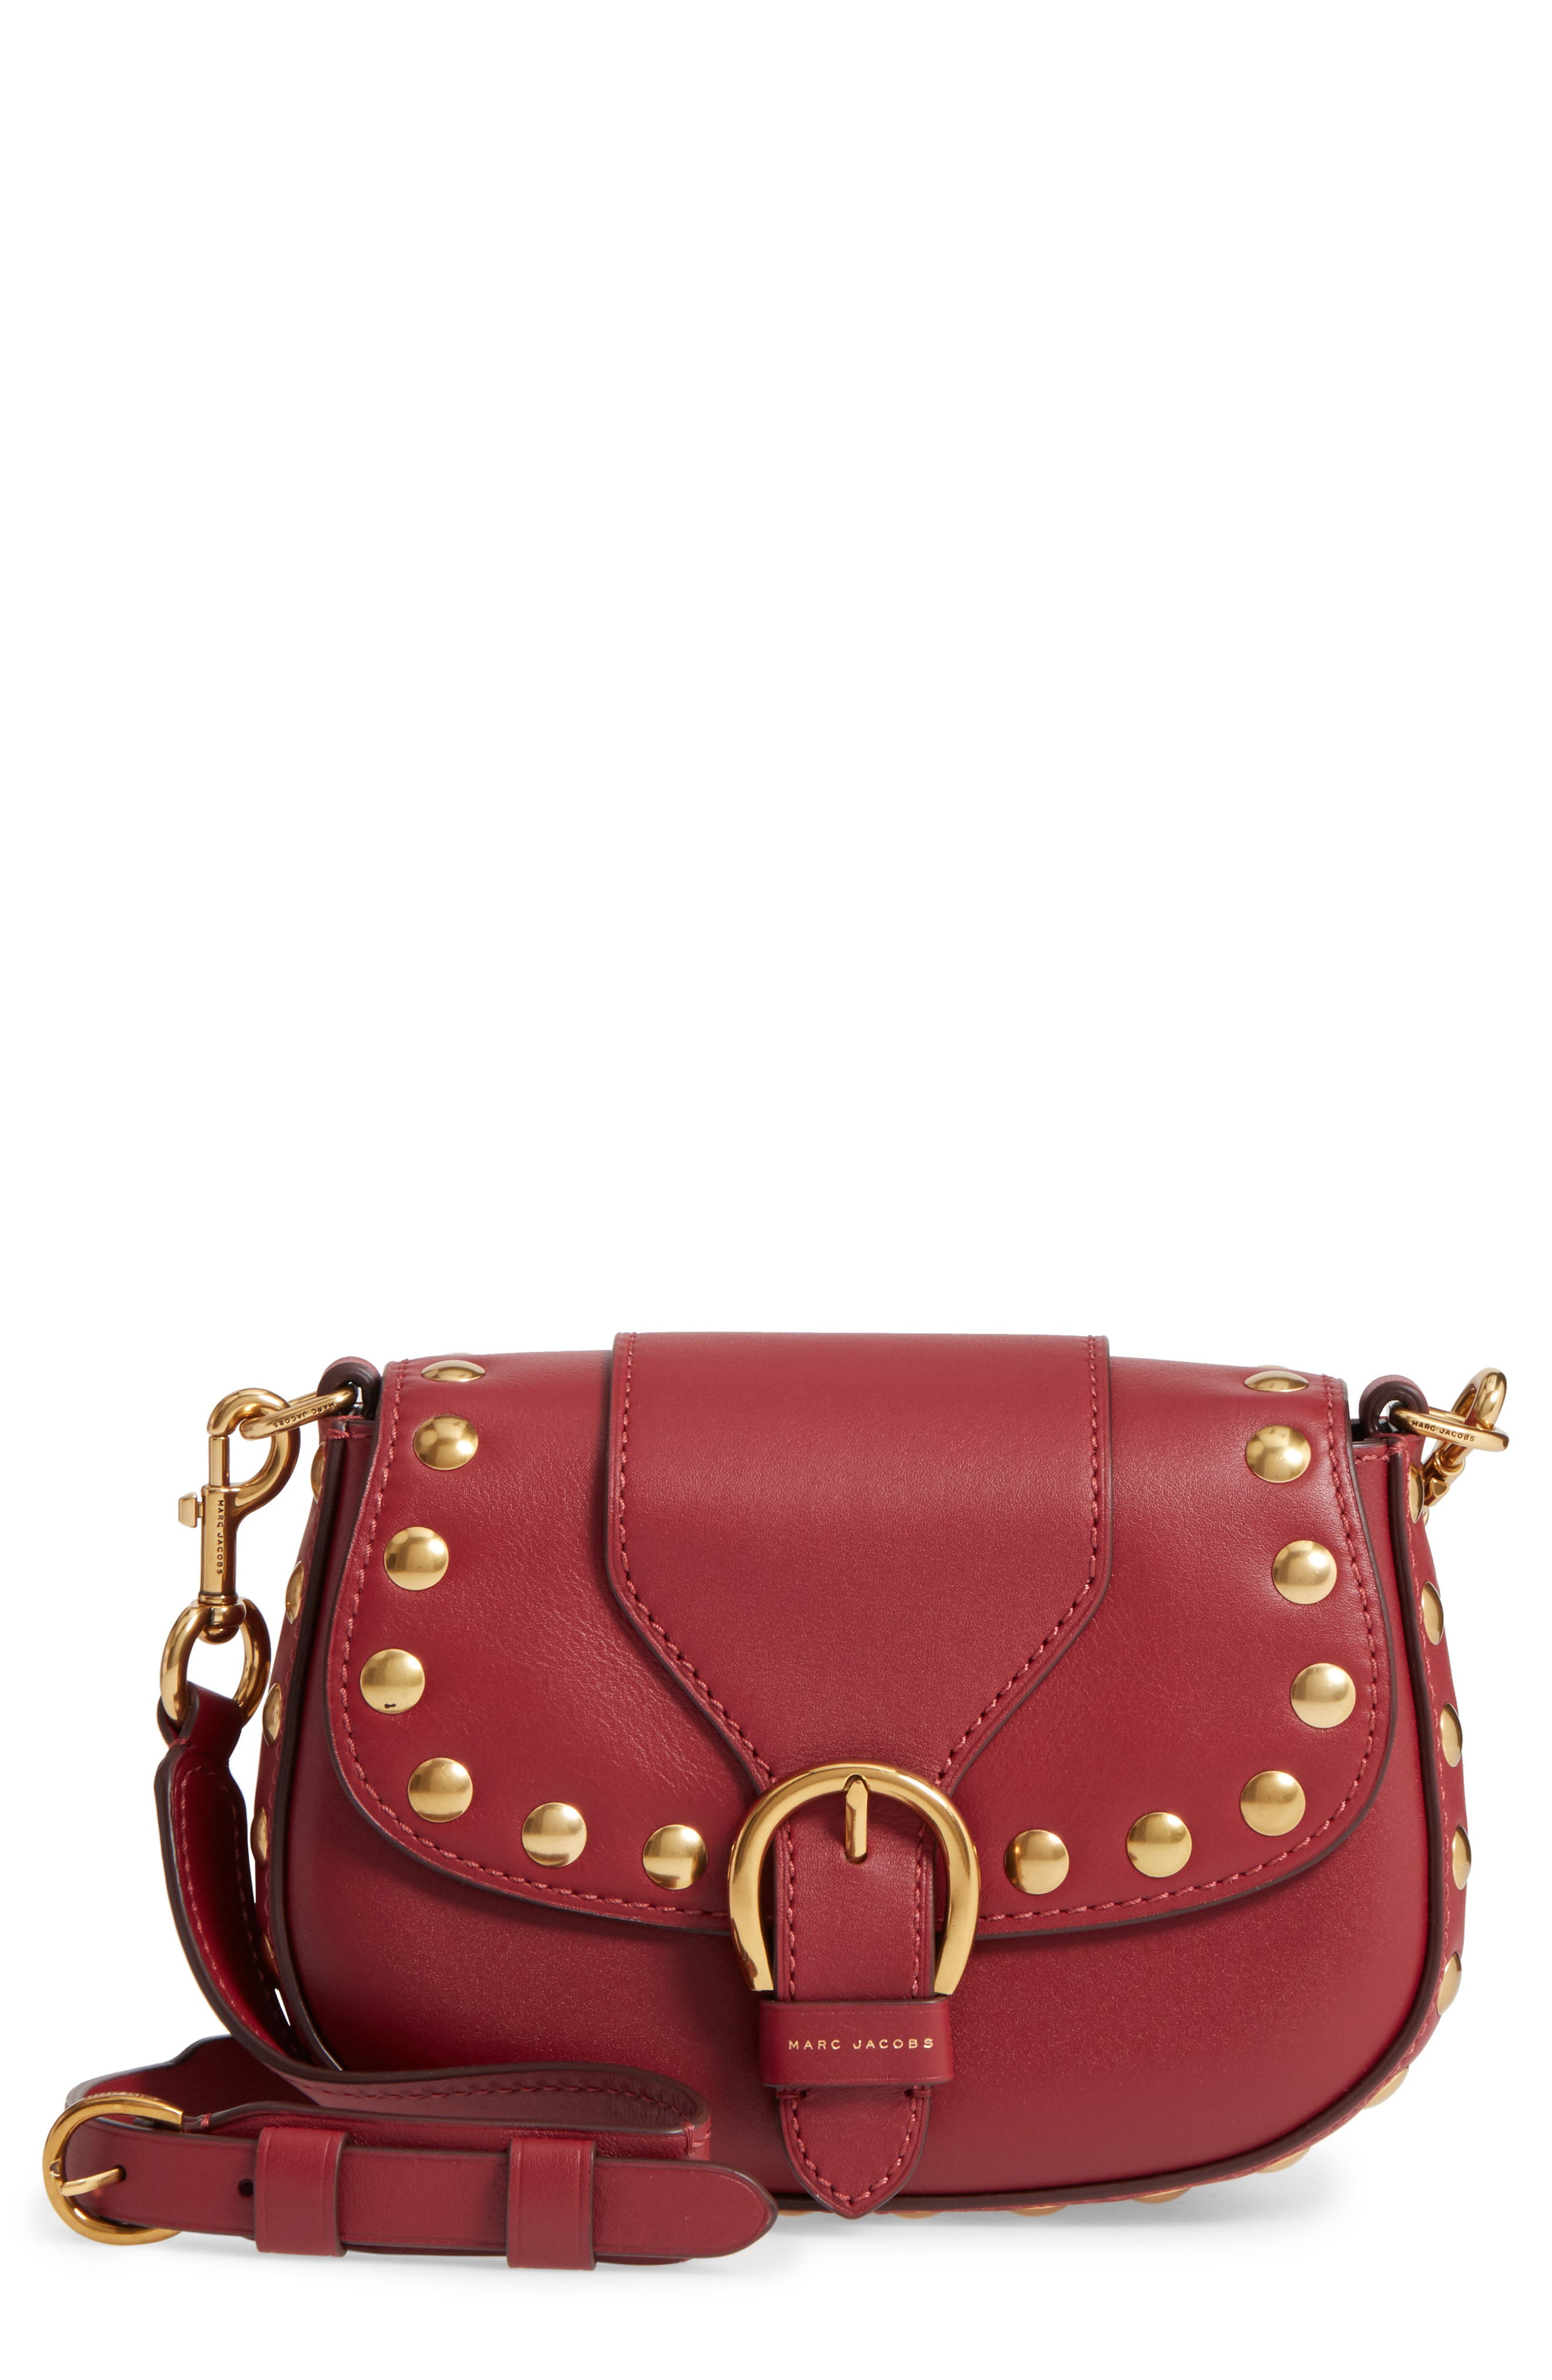 MARC JACOBS Small Studded Navigator Leather Saddle Bag